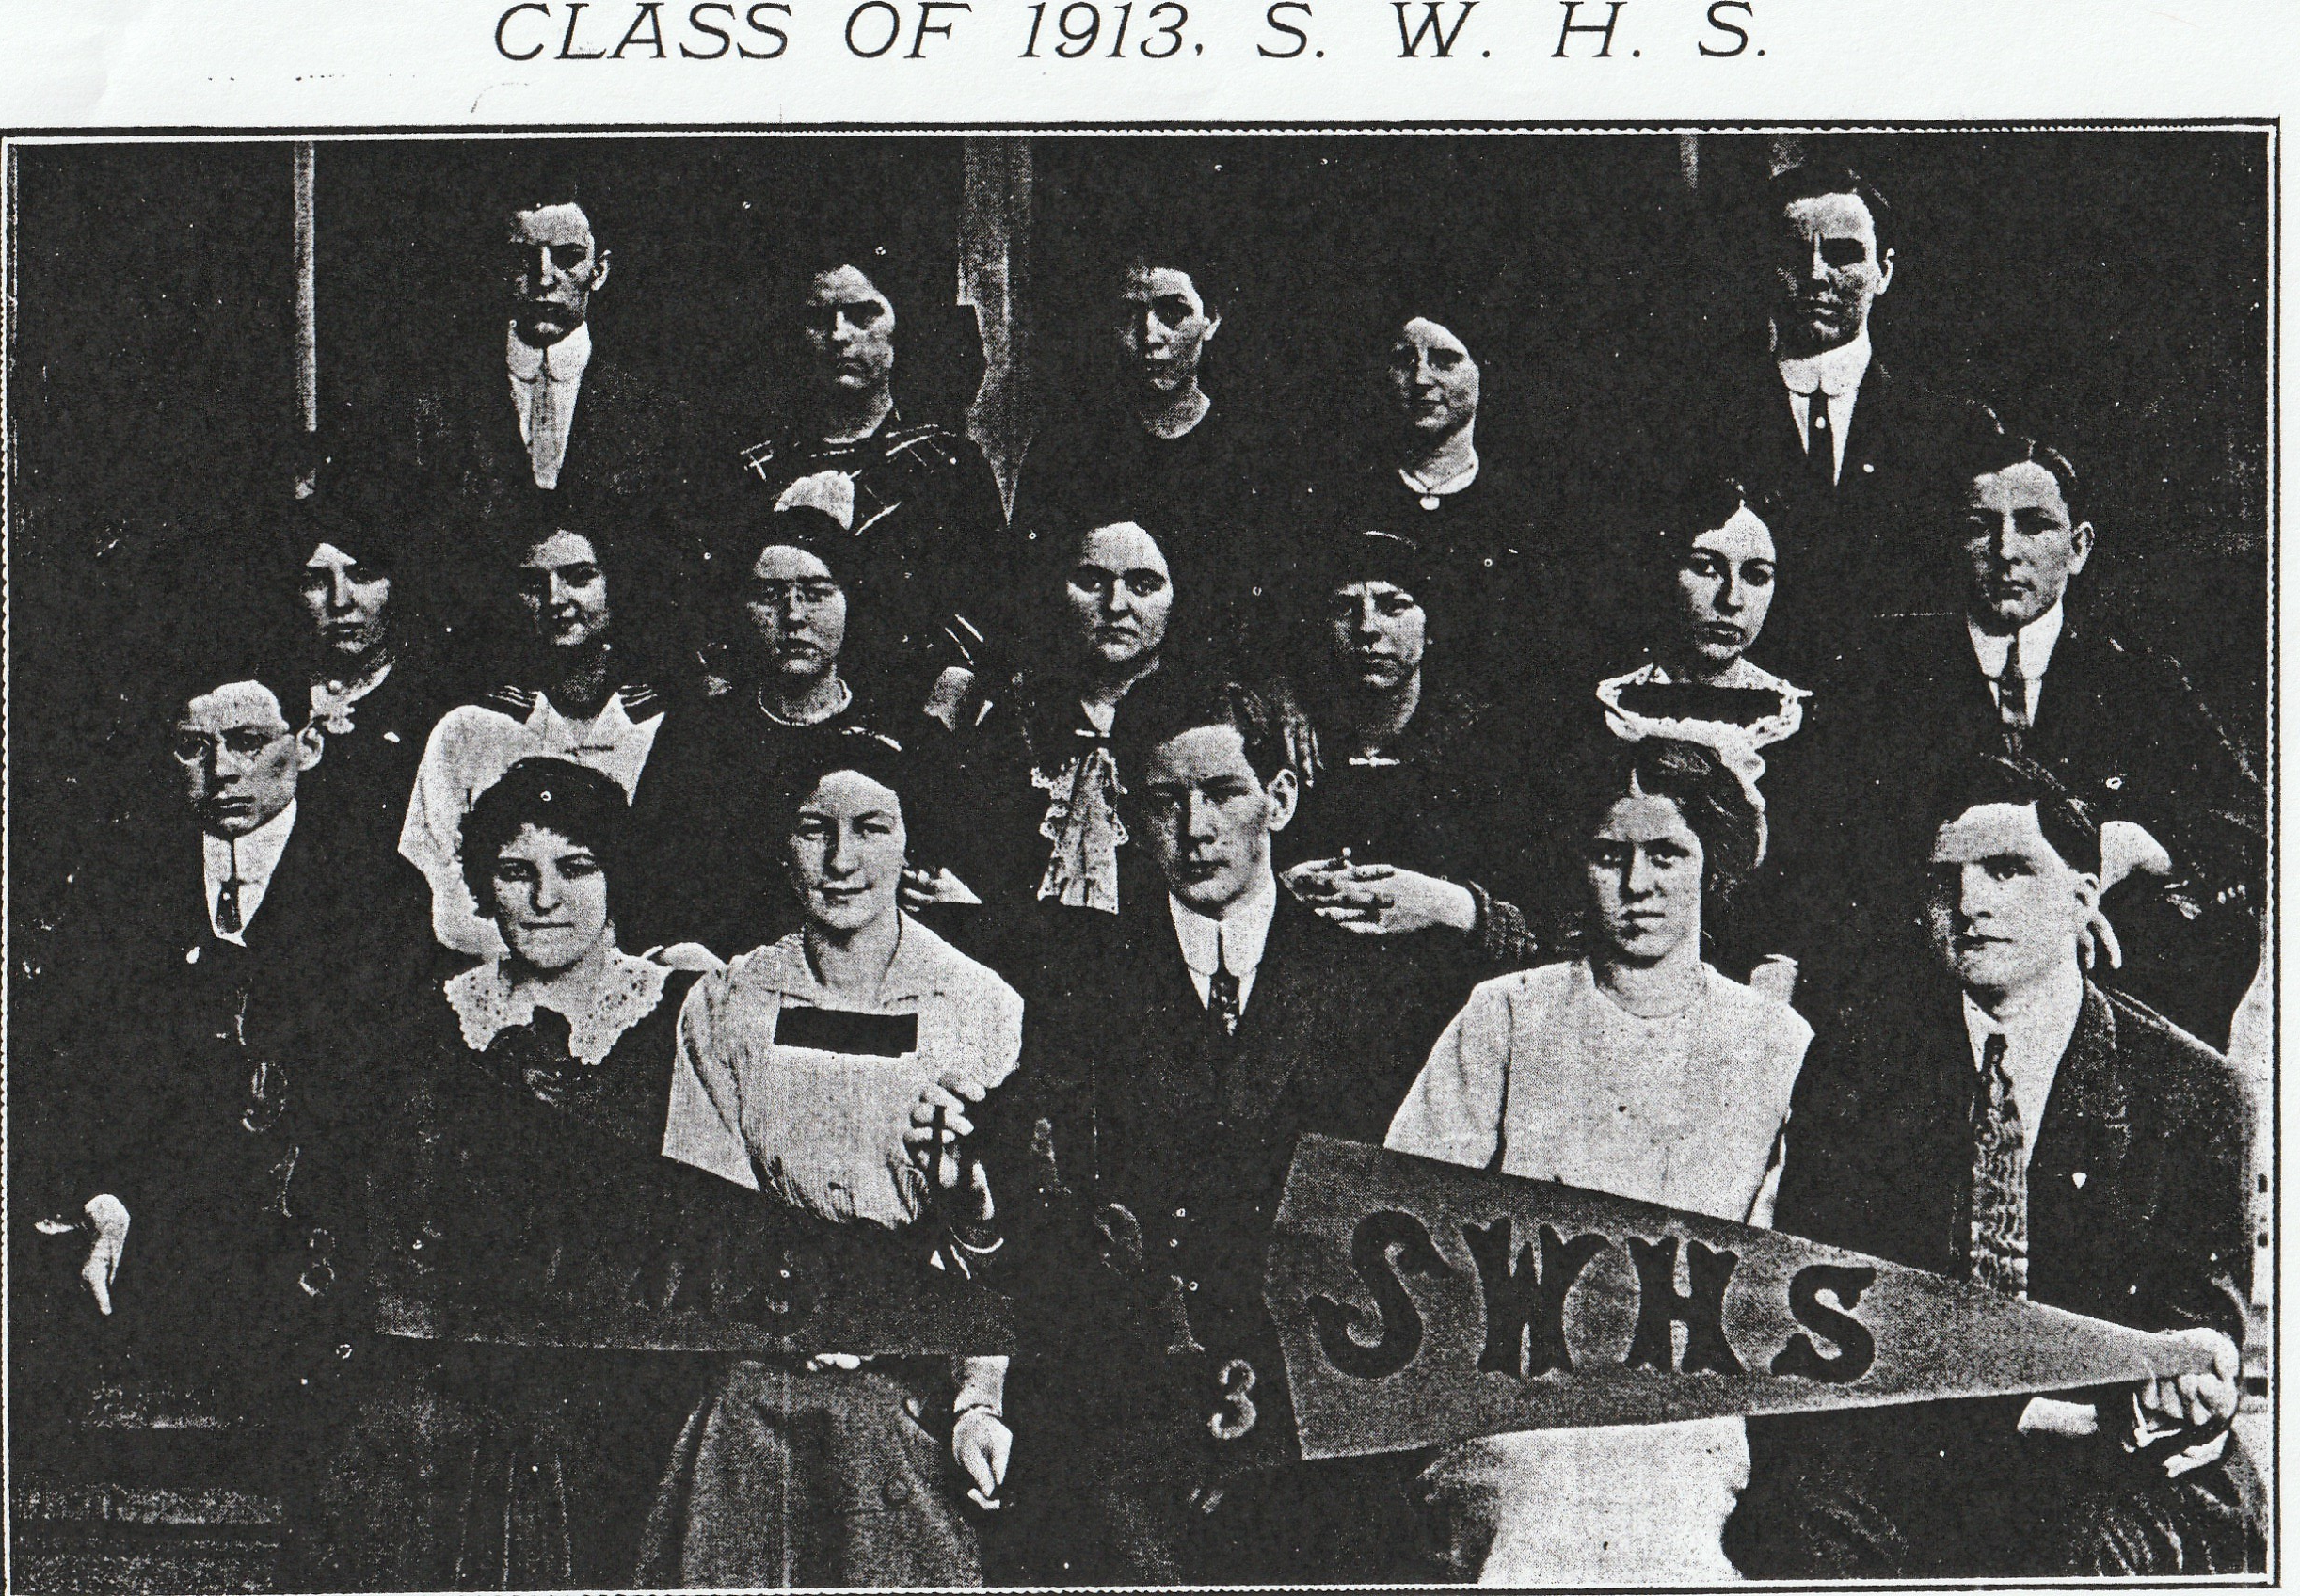 South Williamsport Class 1913